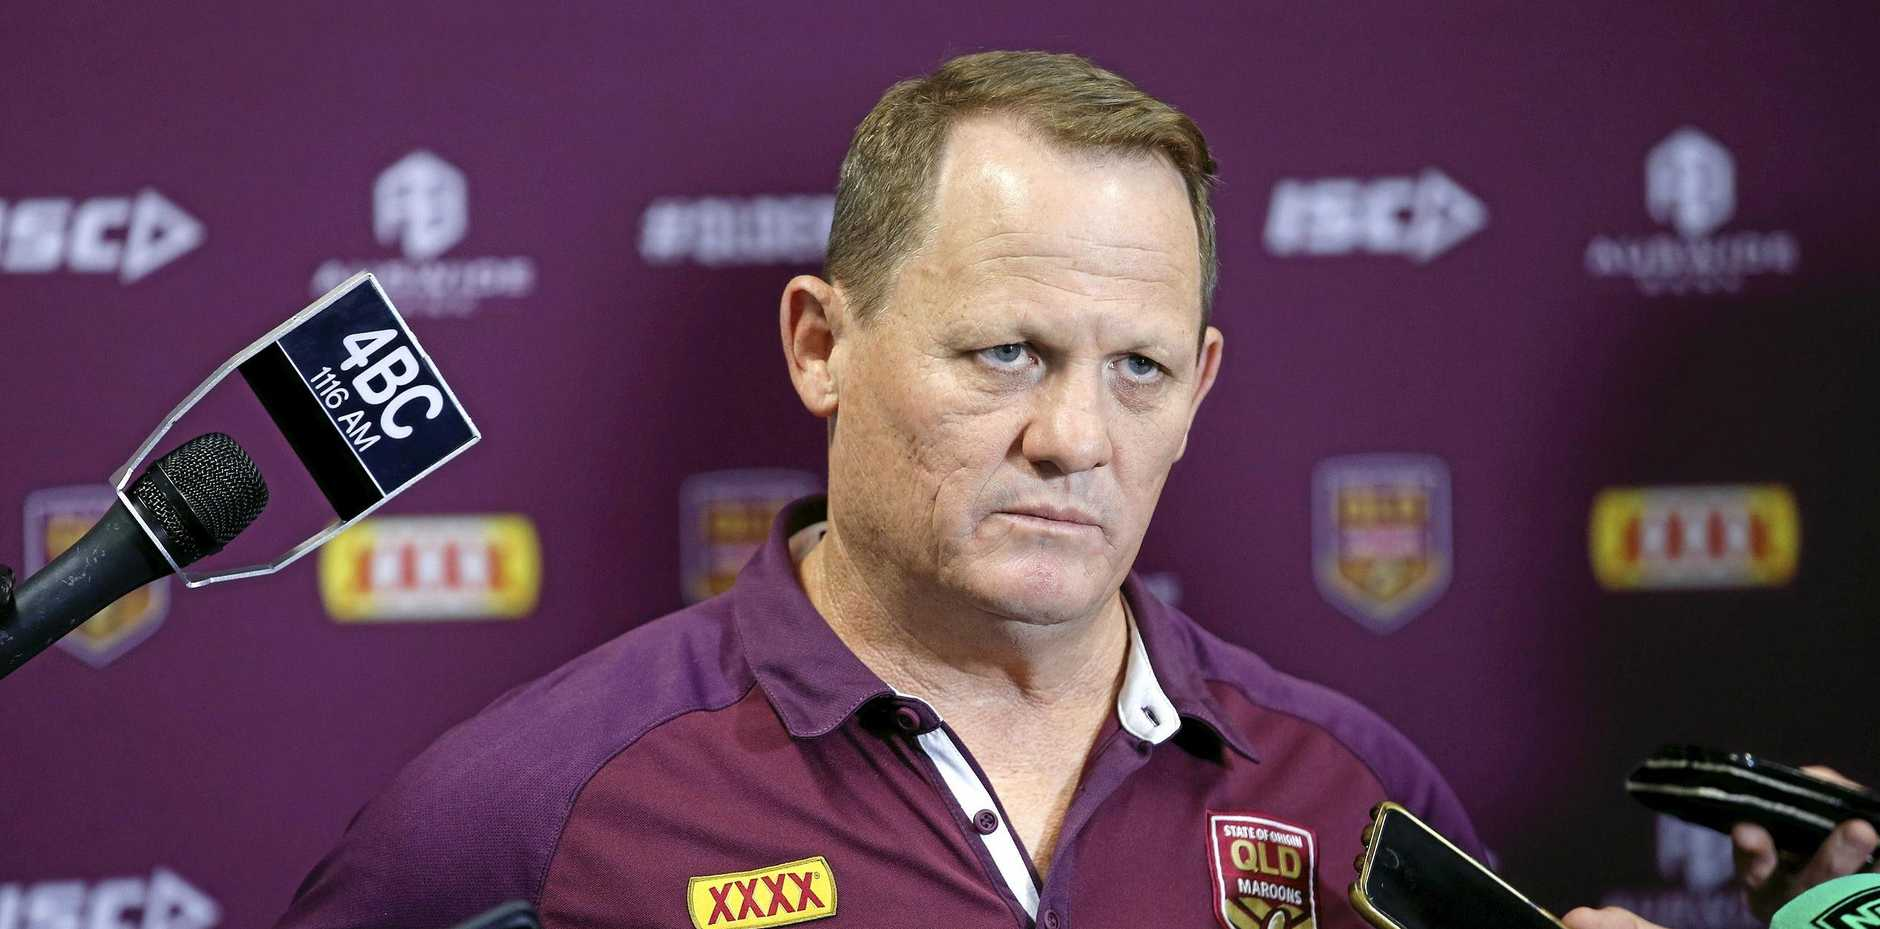 Maroons coach Kevin Walters pictured addressing the media ahead of the Queensland State of Origin team announcement at Queensland Rugby League, Brisbane 27th of May 2019.  (AAP Image/Josh Woning)